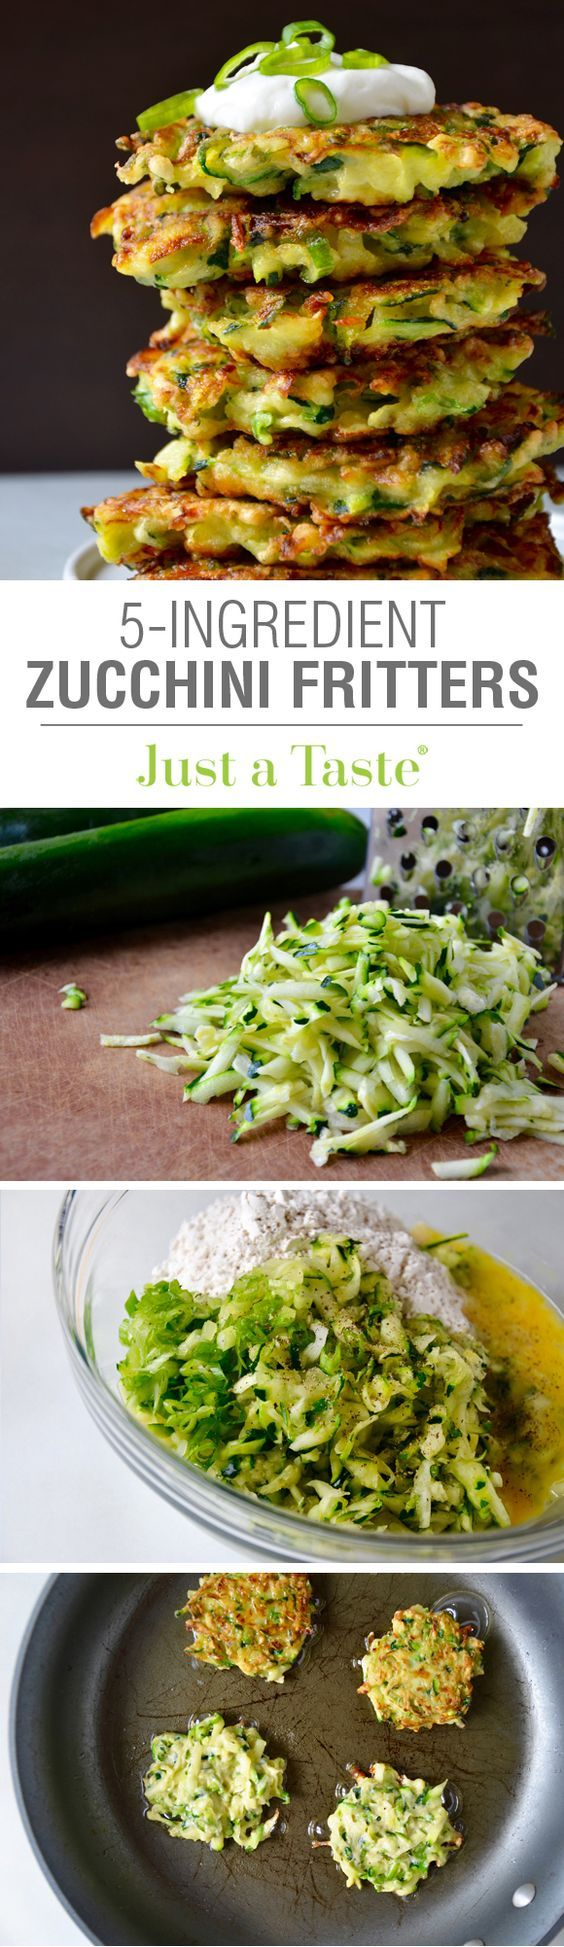 5-Ingredient Zucchini Fritters #recipe via justataste.com: Wasn't incredibly impressed with these, but perhaps I did something off in cooking them.  Will try again.